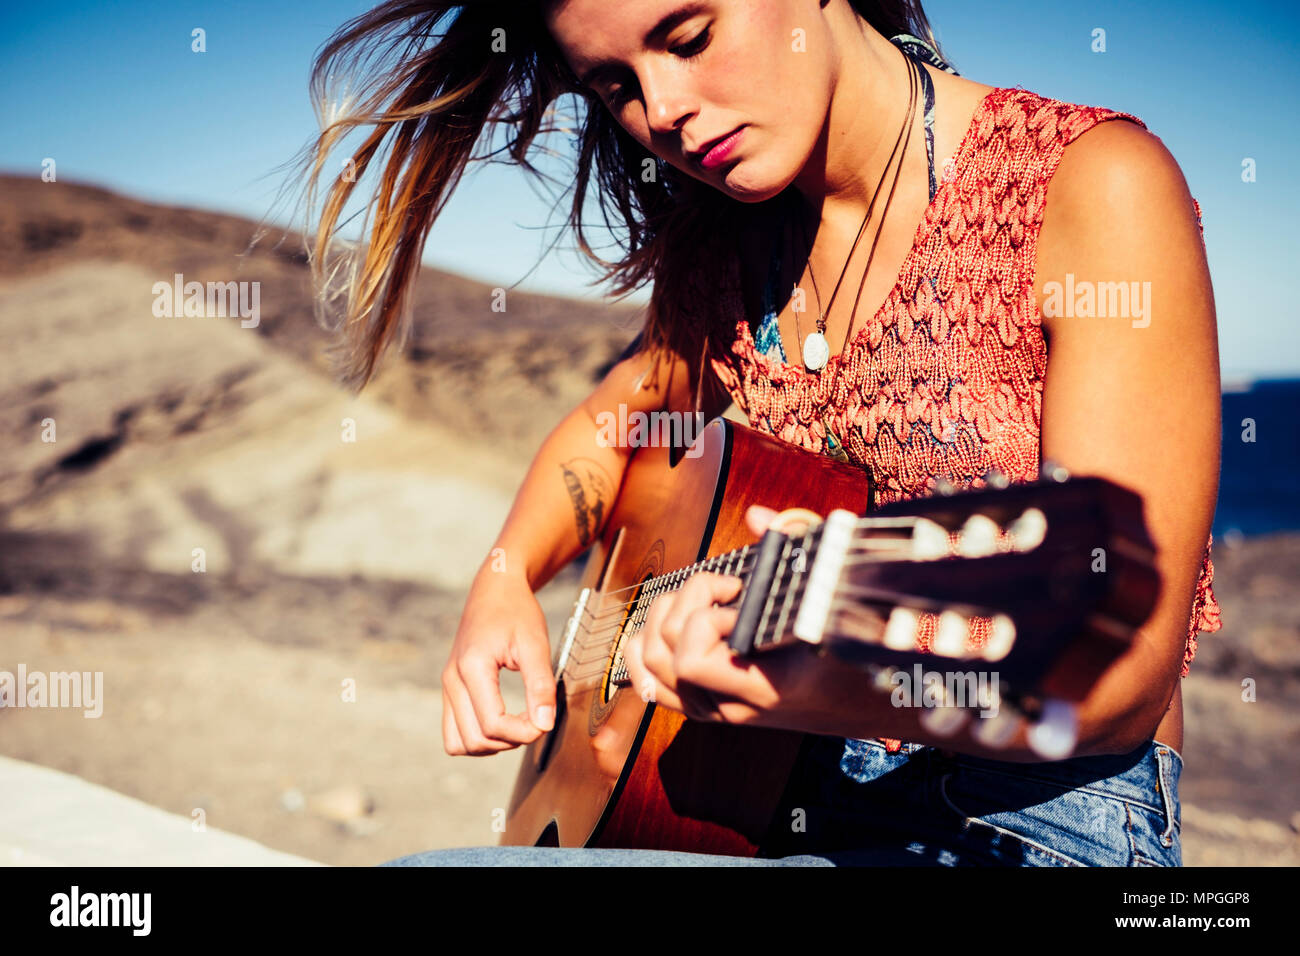 nice caucasian blonde girl playing guitar outdoor in tenerife. frredom and hippy vacation concept. beautiful face doing music. - Stock Image